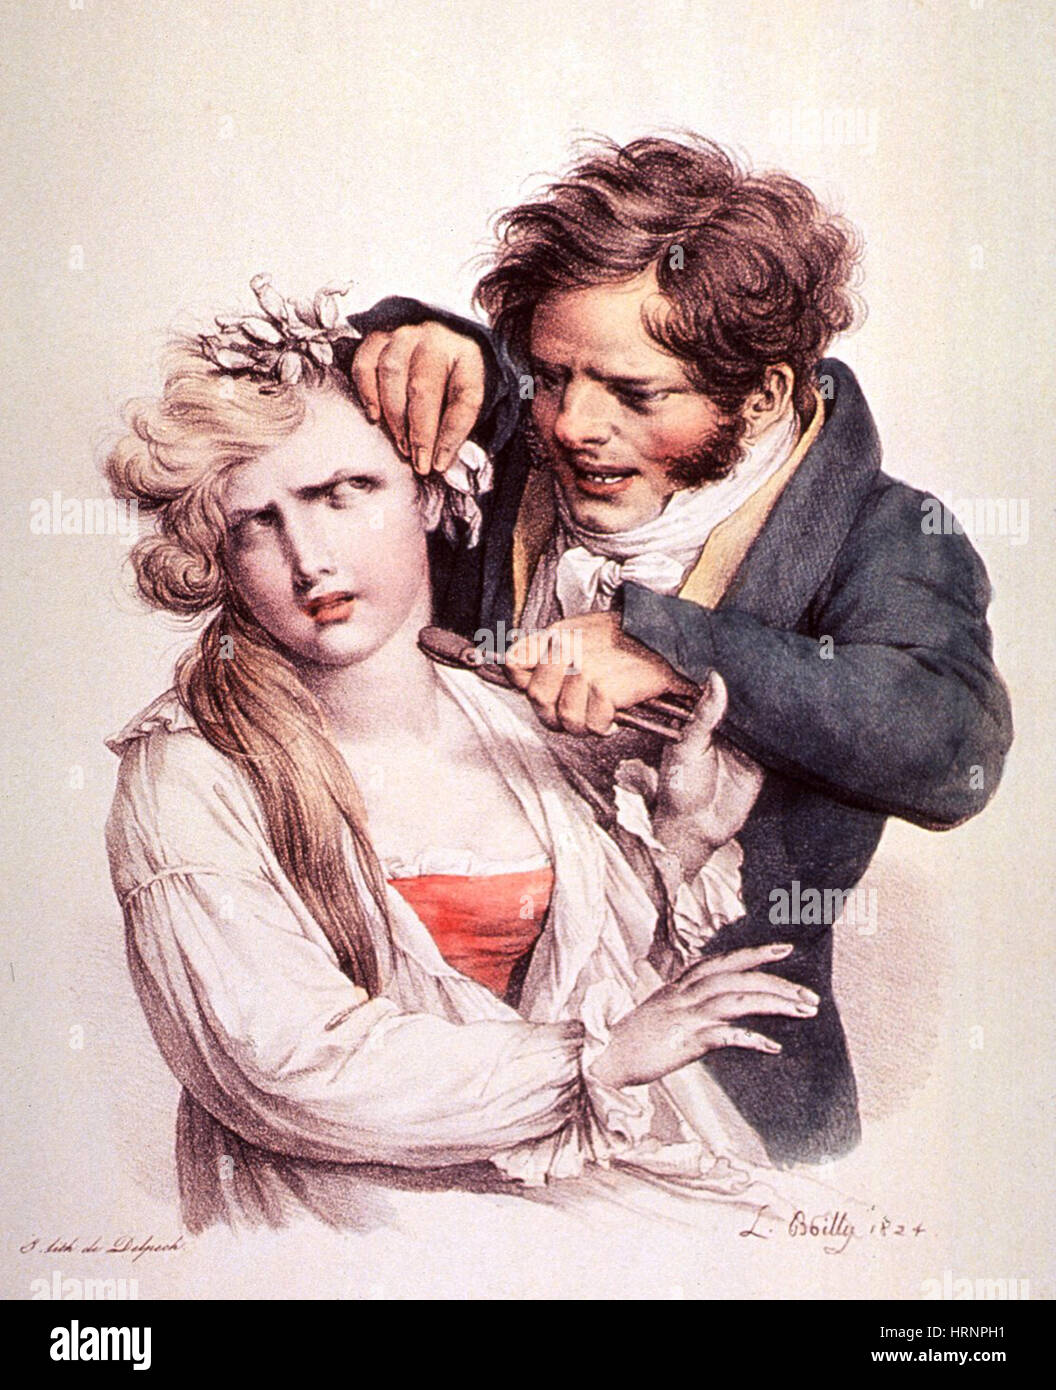 The Culture of Beauty, Hair Curling, 1824 - Stock Image